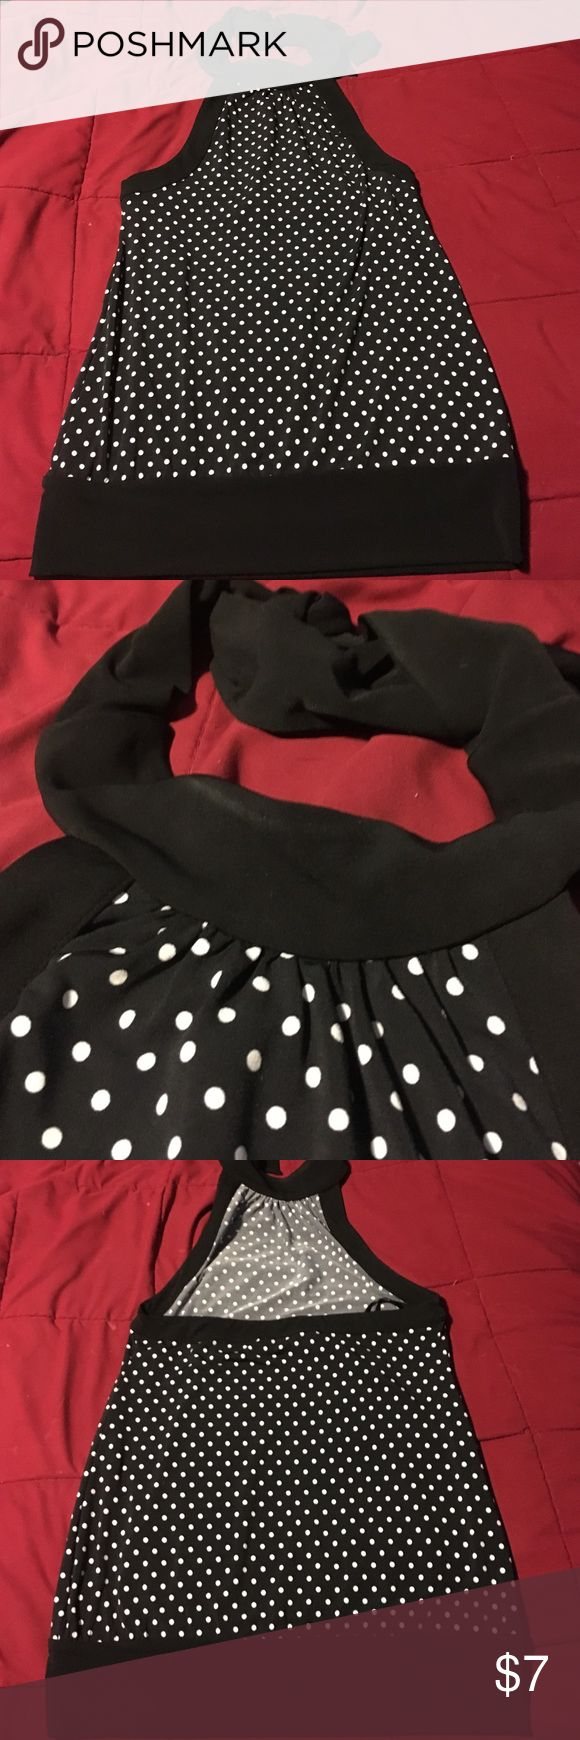 Black and white polka dot halter. Size XS Black with white polka dots. Ties around neck. Some slight discoloration around the neck. See pic. Size XS White House Black Market Tops Blouses